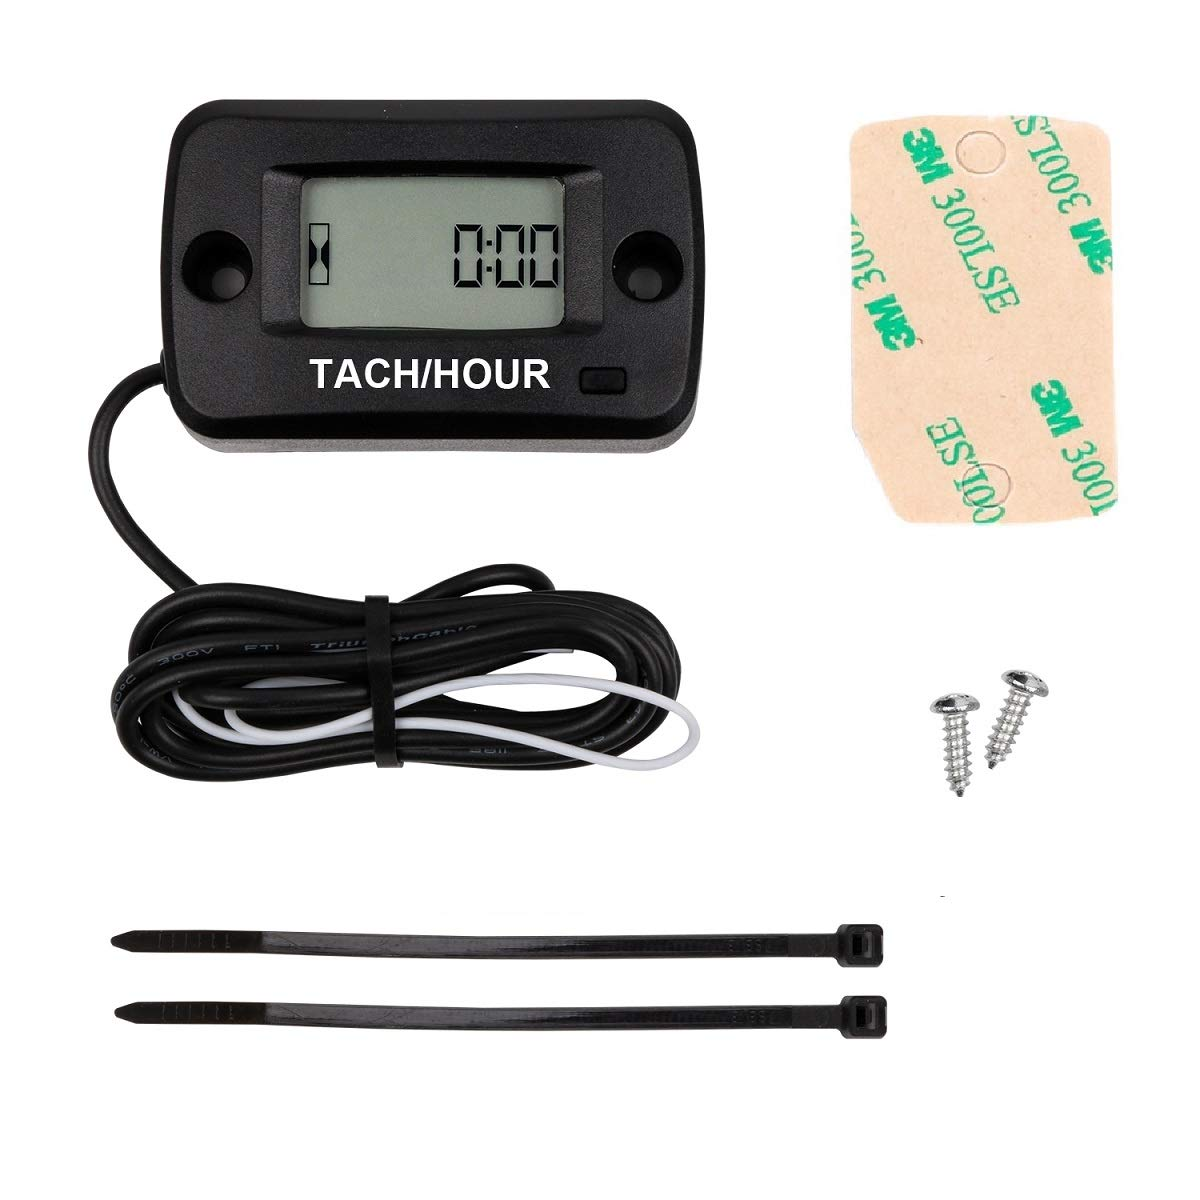 SEARON Tach Hour Meter Tachometer 2 & 4 Stroke Small Engine Spark for Boat Outboard Mercury Motocross Lawn Mower Black by SEARON